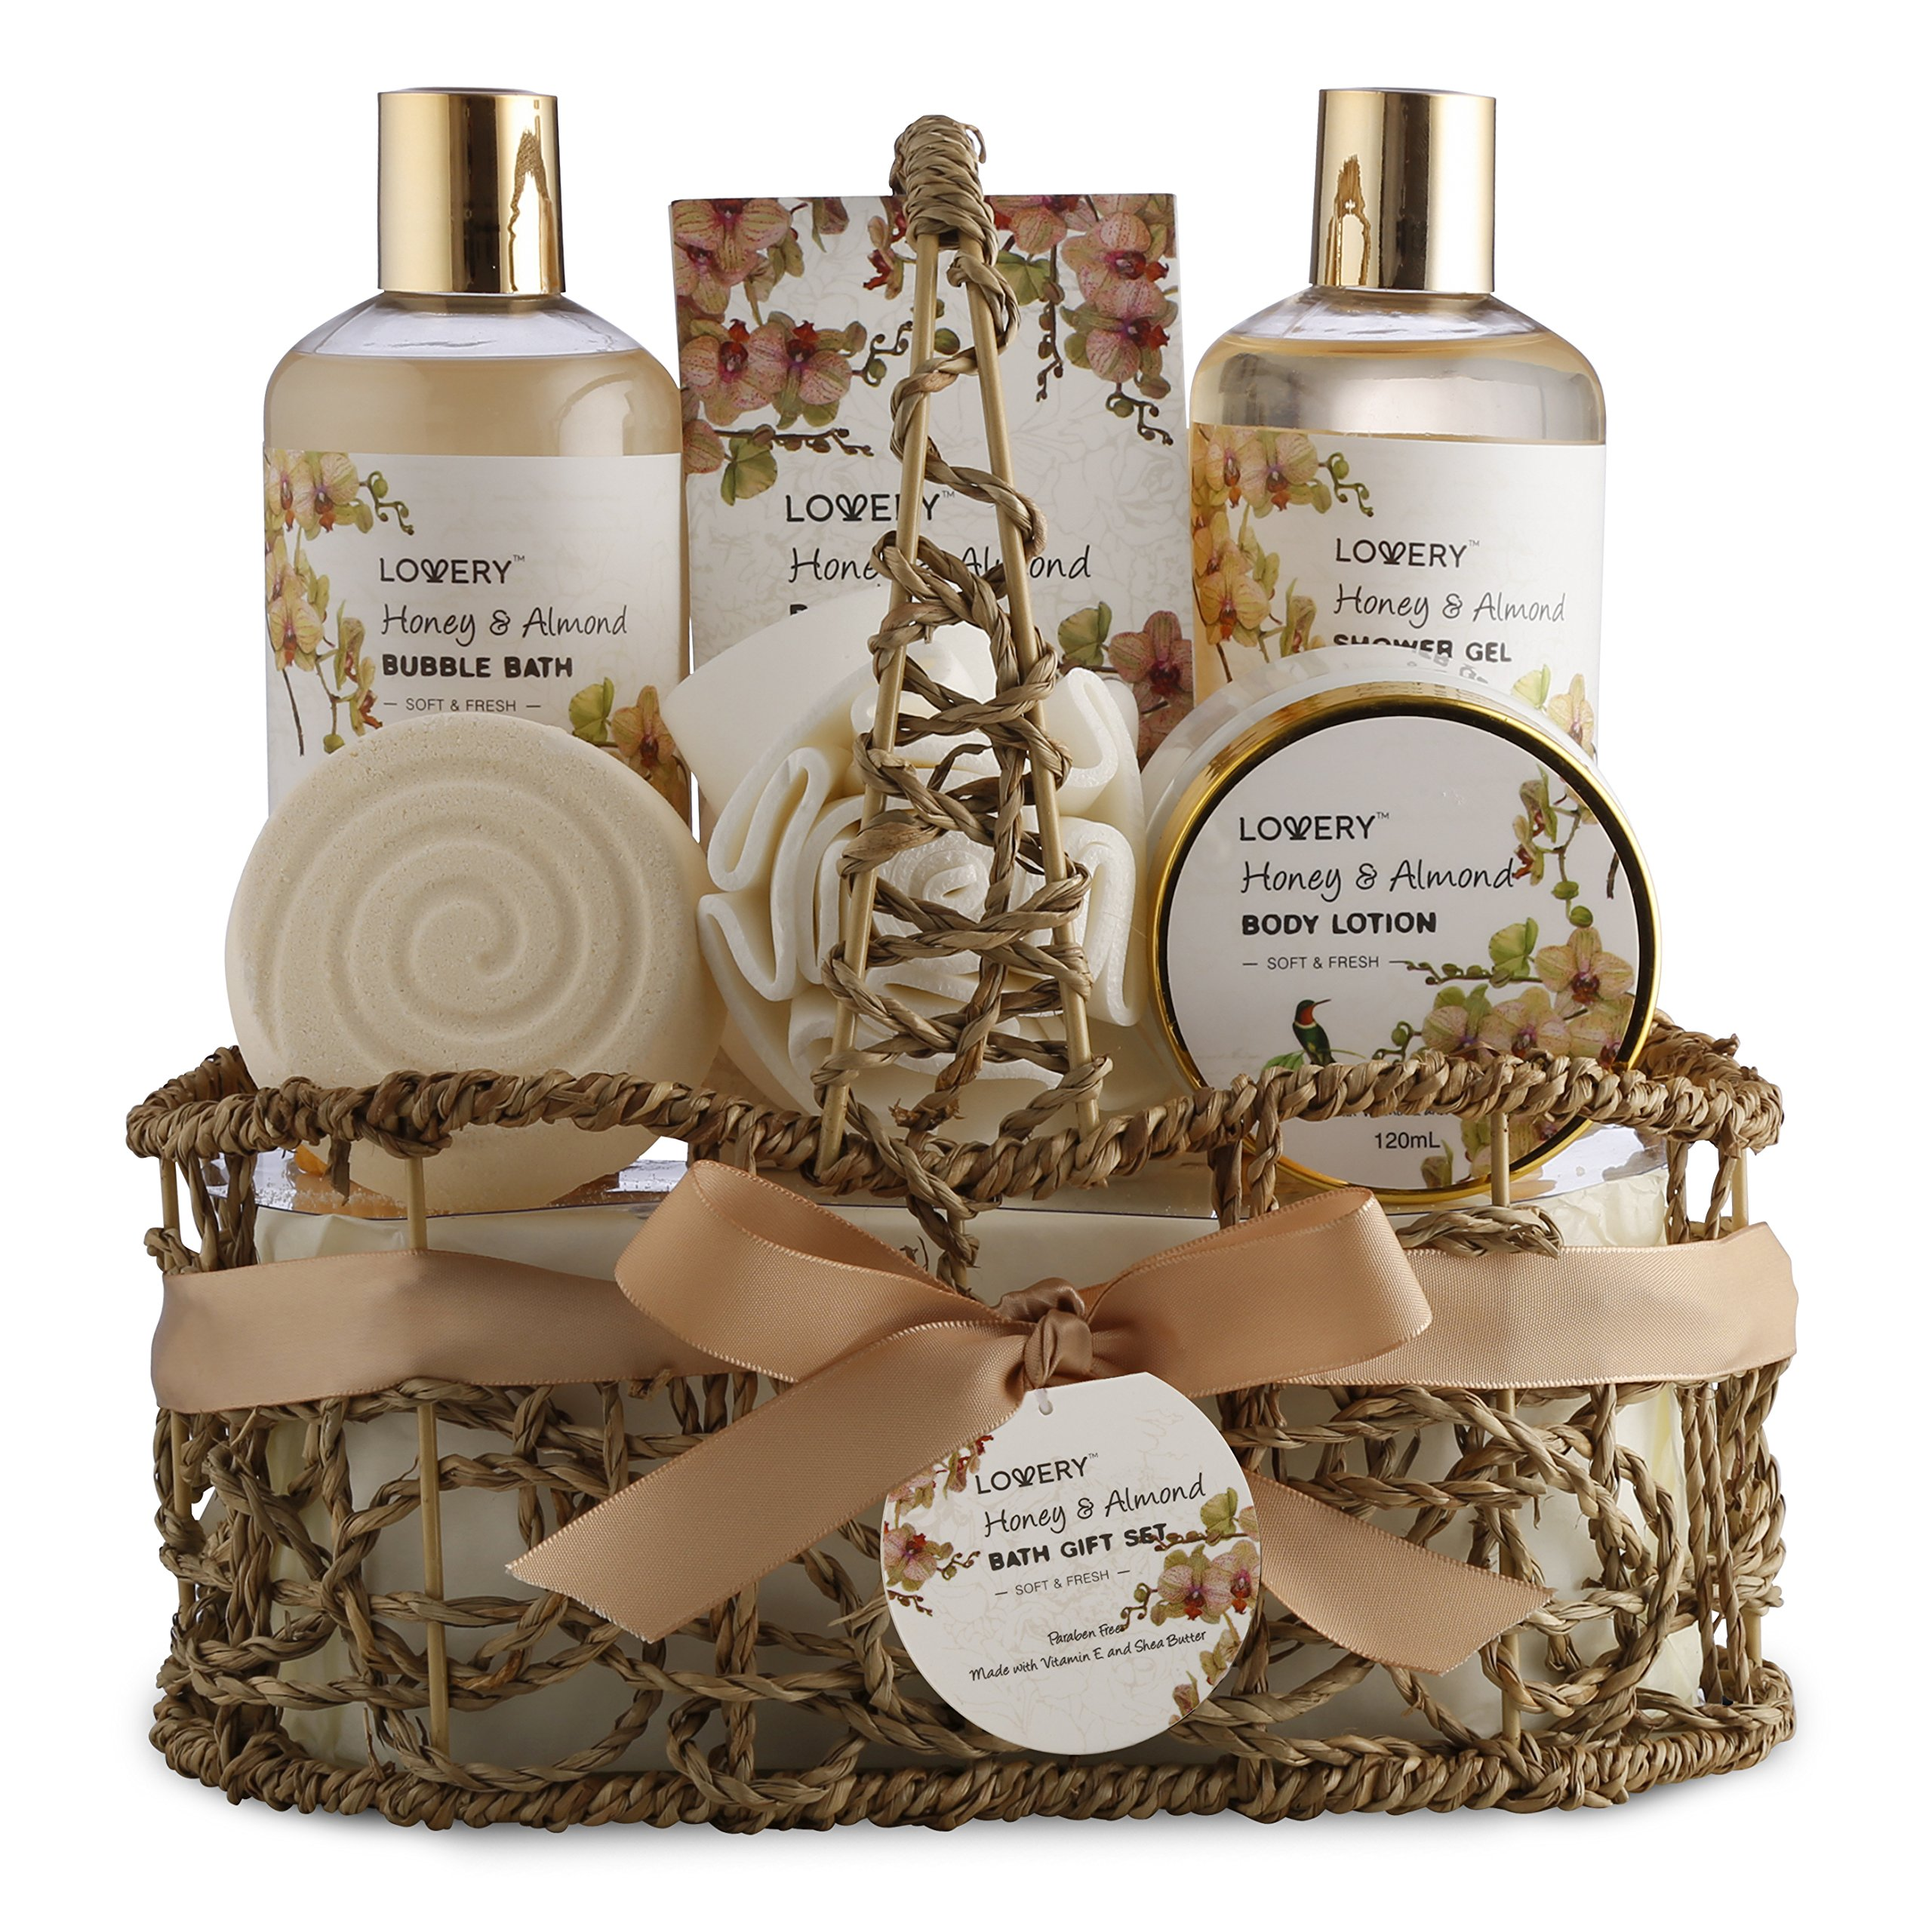 Home Spa Gift Basket - Honey & Almond Scent - Luxury Bath & Body Set For Women and Men - Contains Shower Gel, Bubble Bath, Body Lotion, Bath Salt, Bath Bomb, Puff & Handmade Weaved Basket by LOVERY